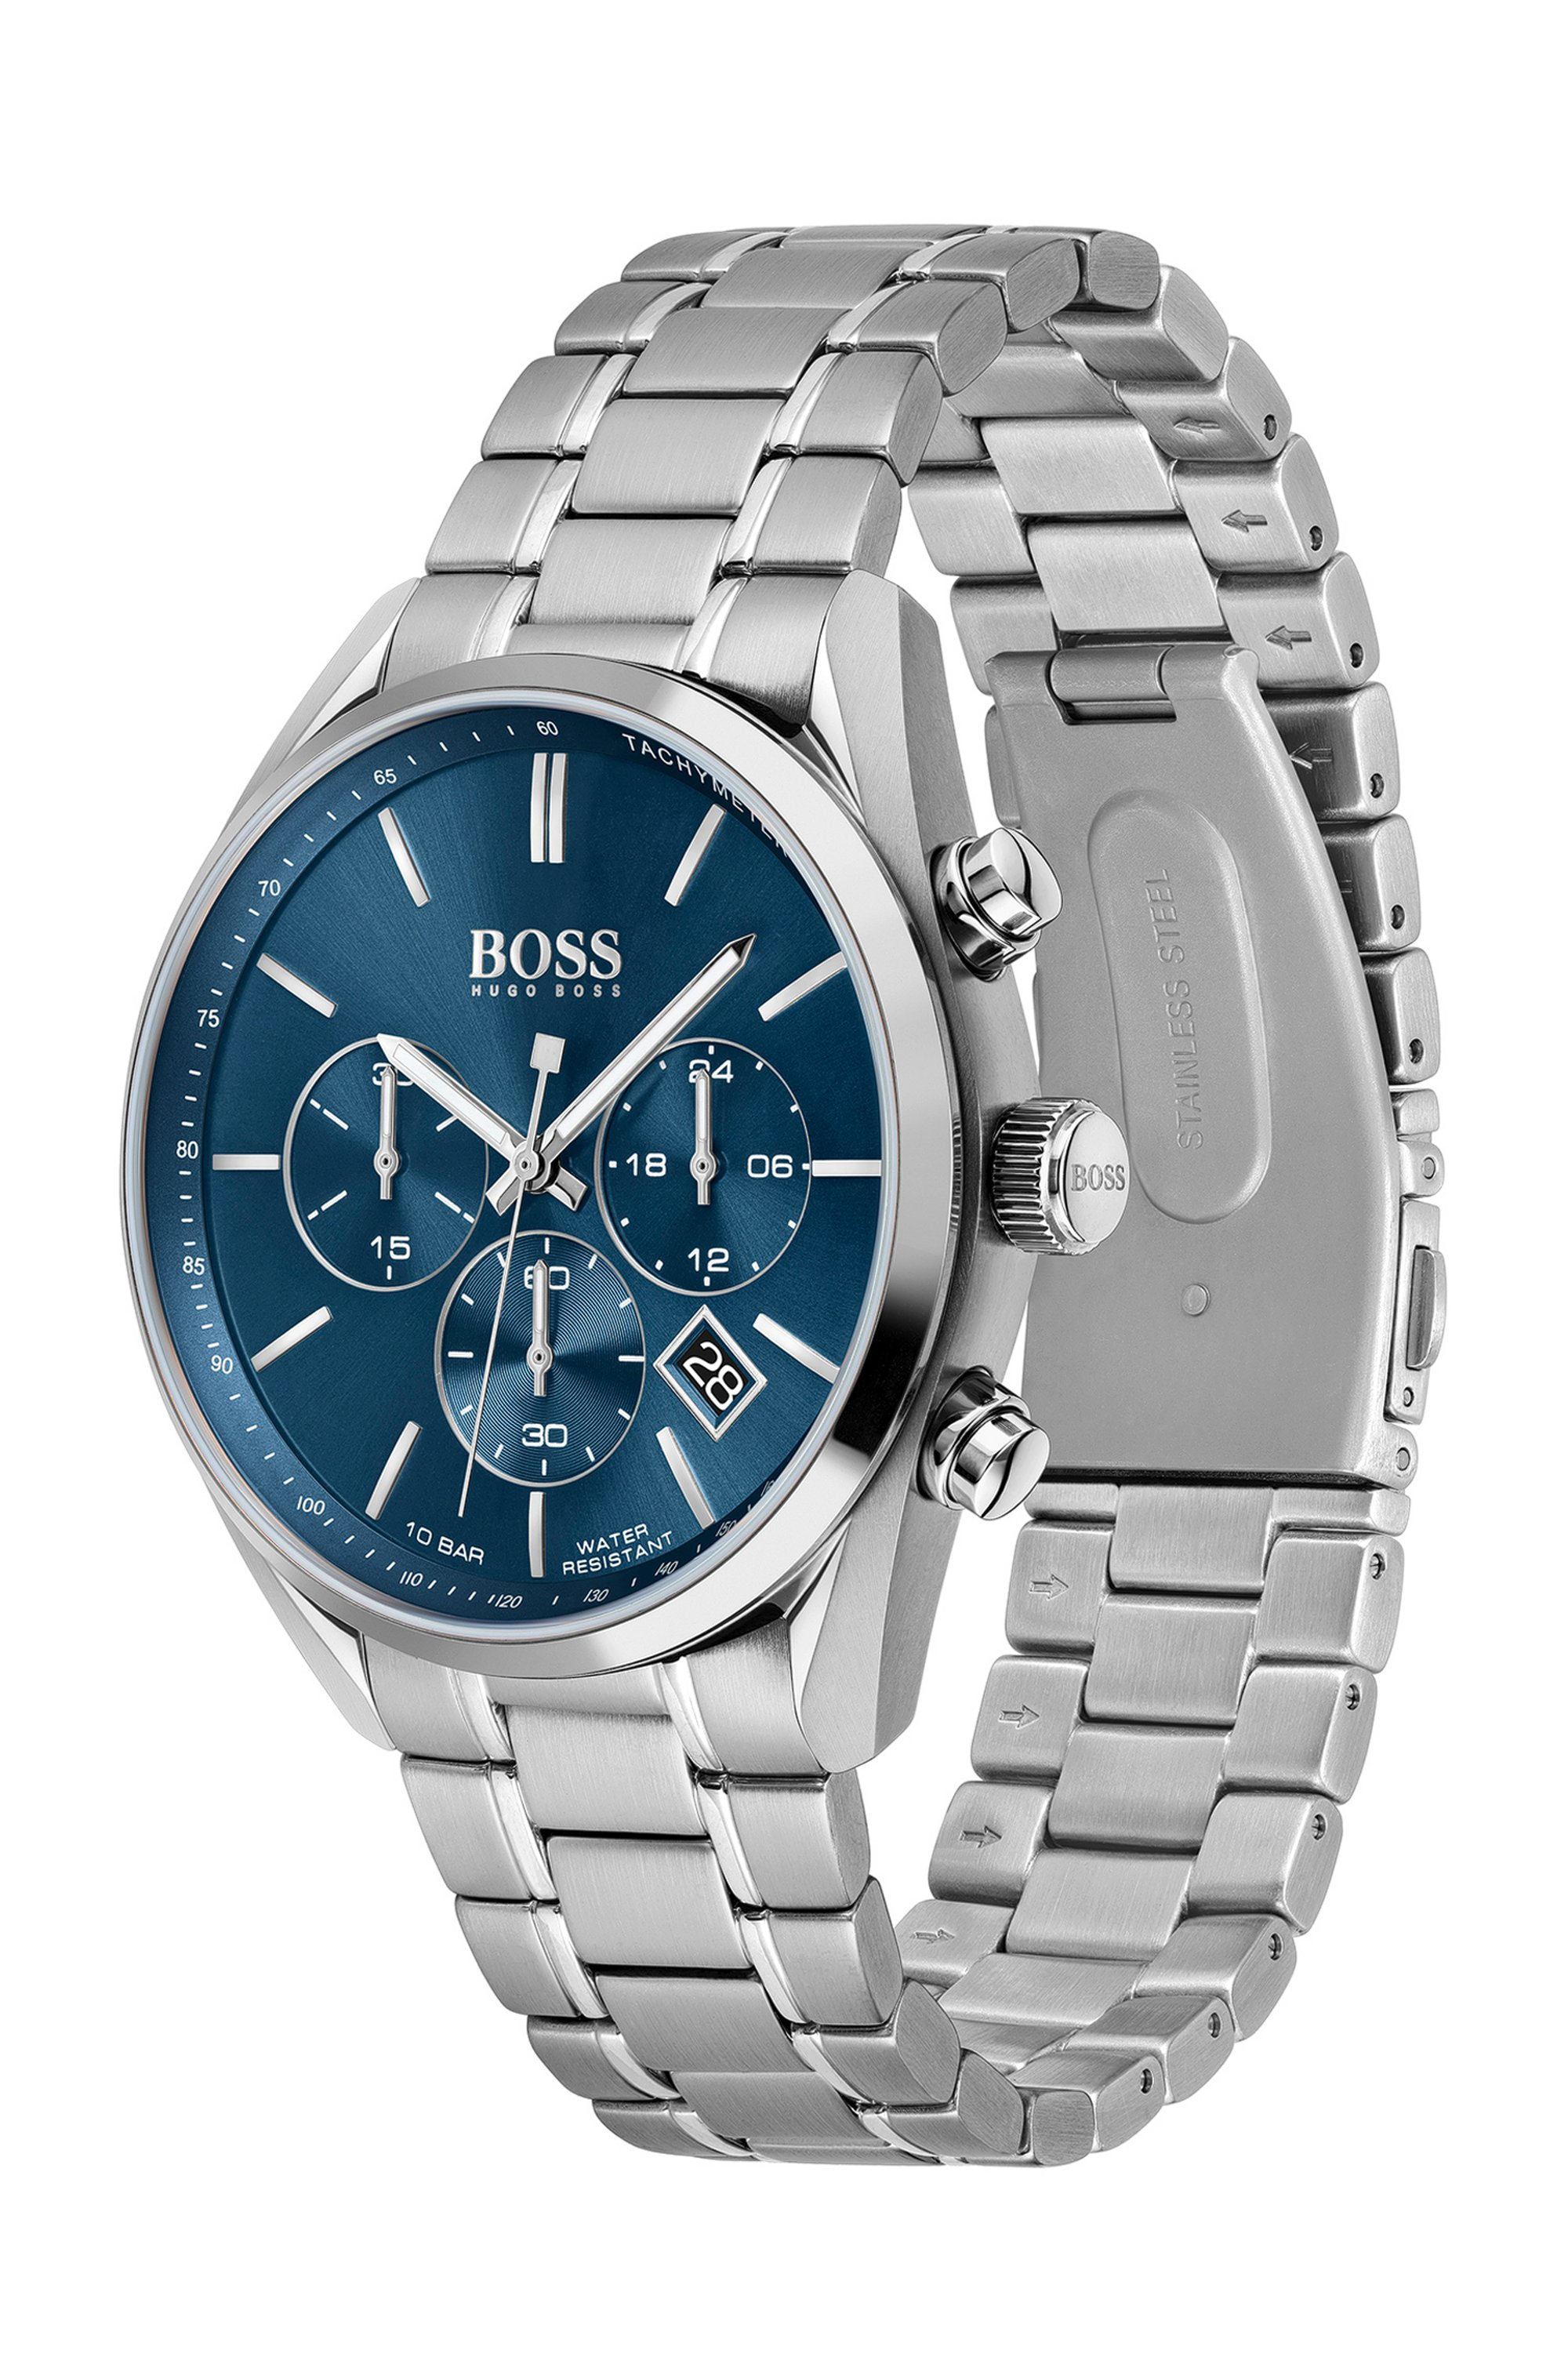 Stainless-steel watch with blue dial and link bracelet